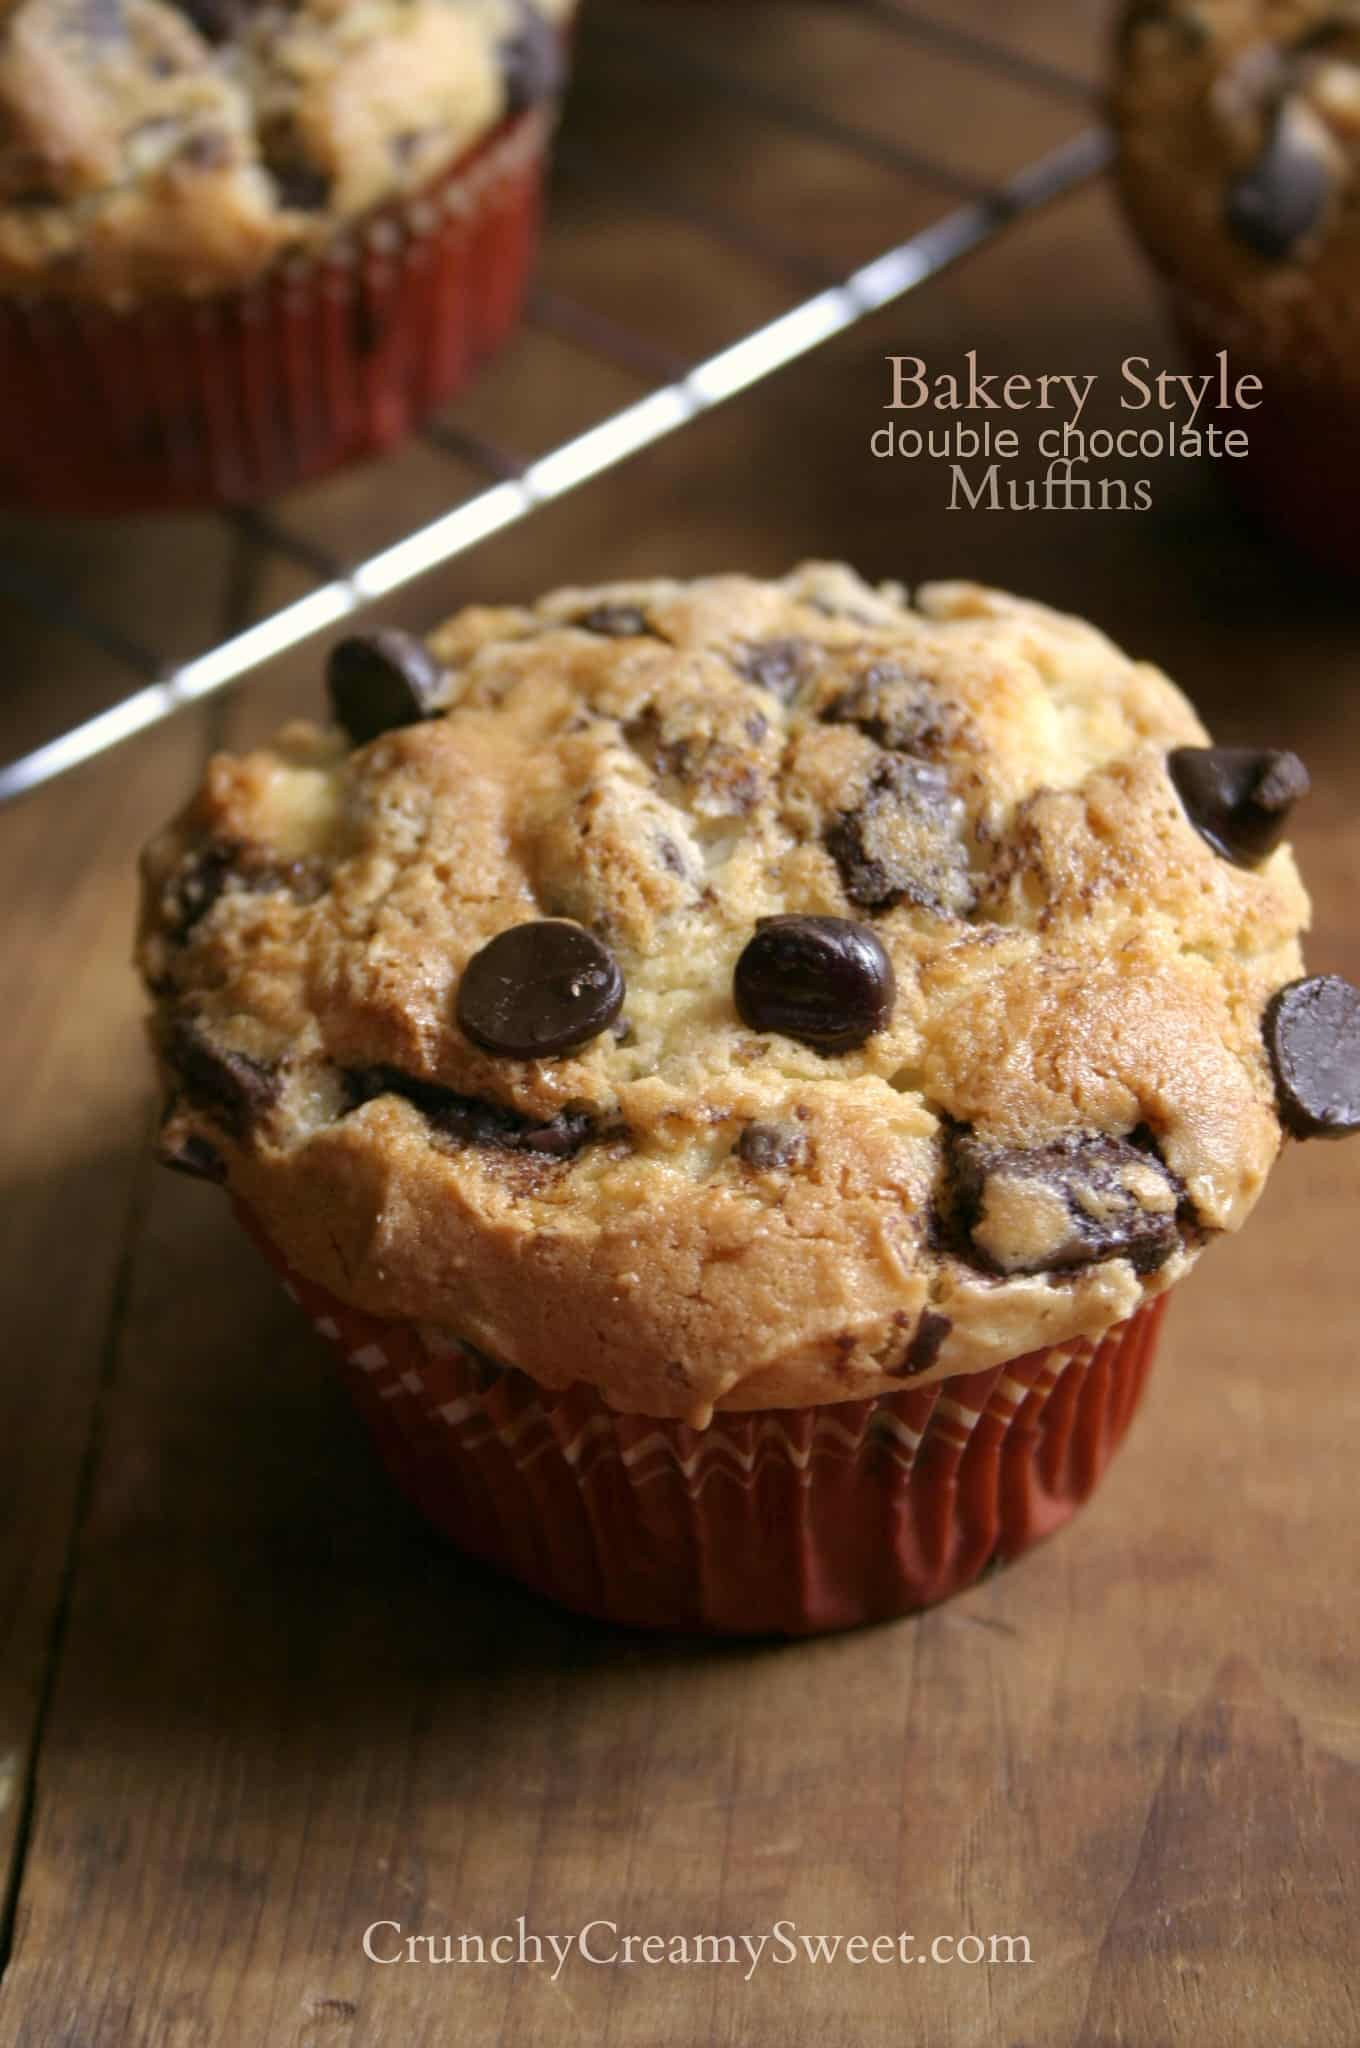 bakery style muffins B 680x1024 Bakery Style Double Chocolate Muffins ...